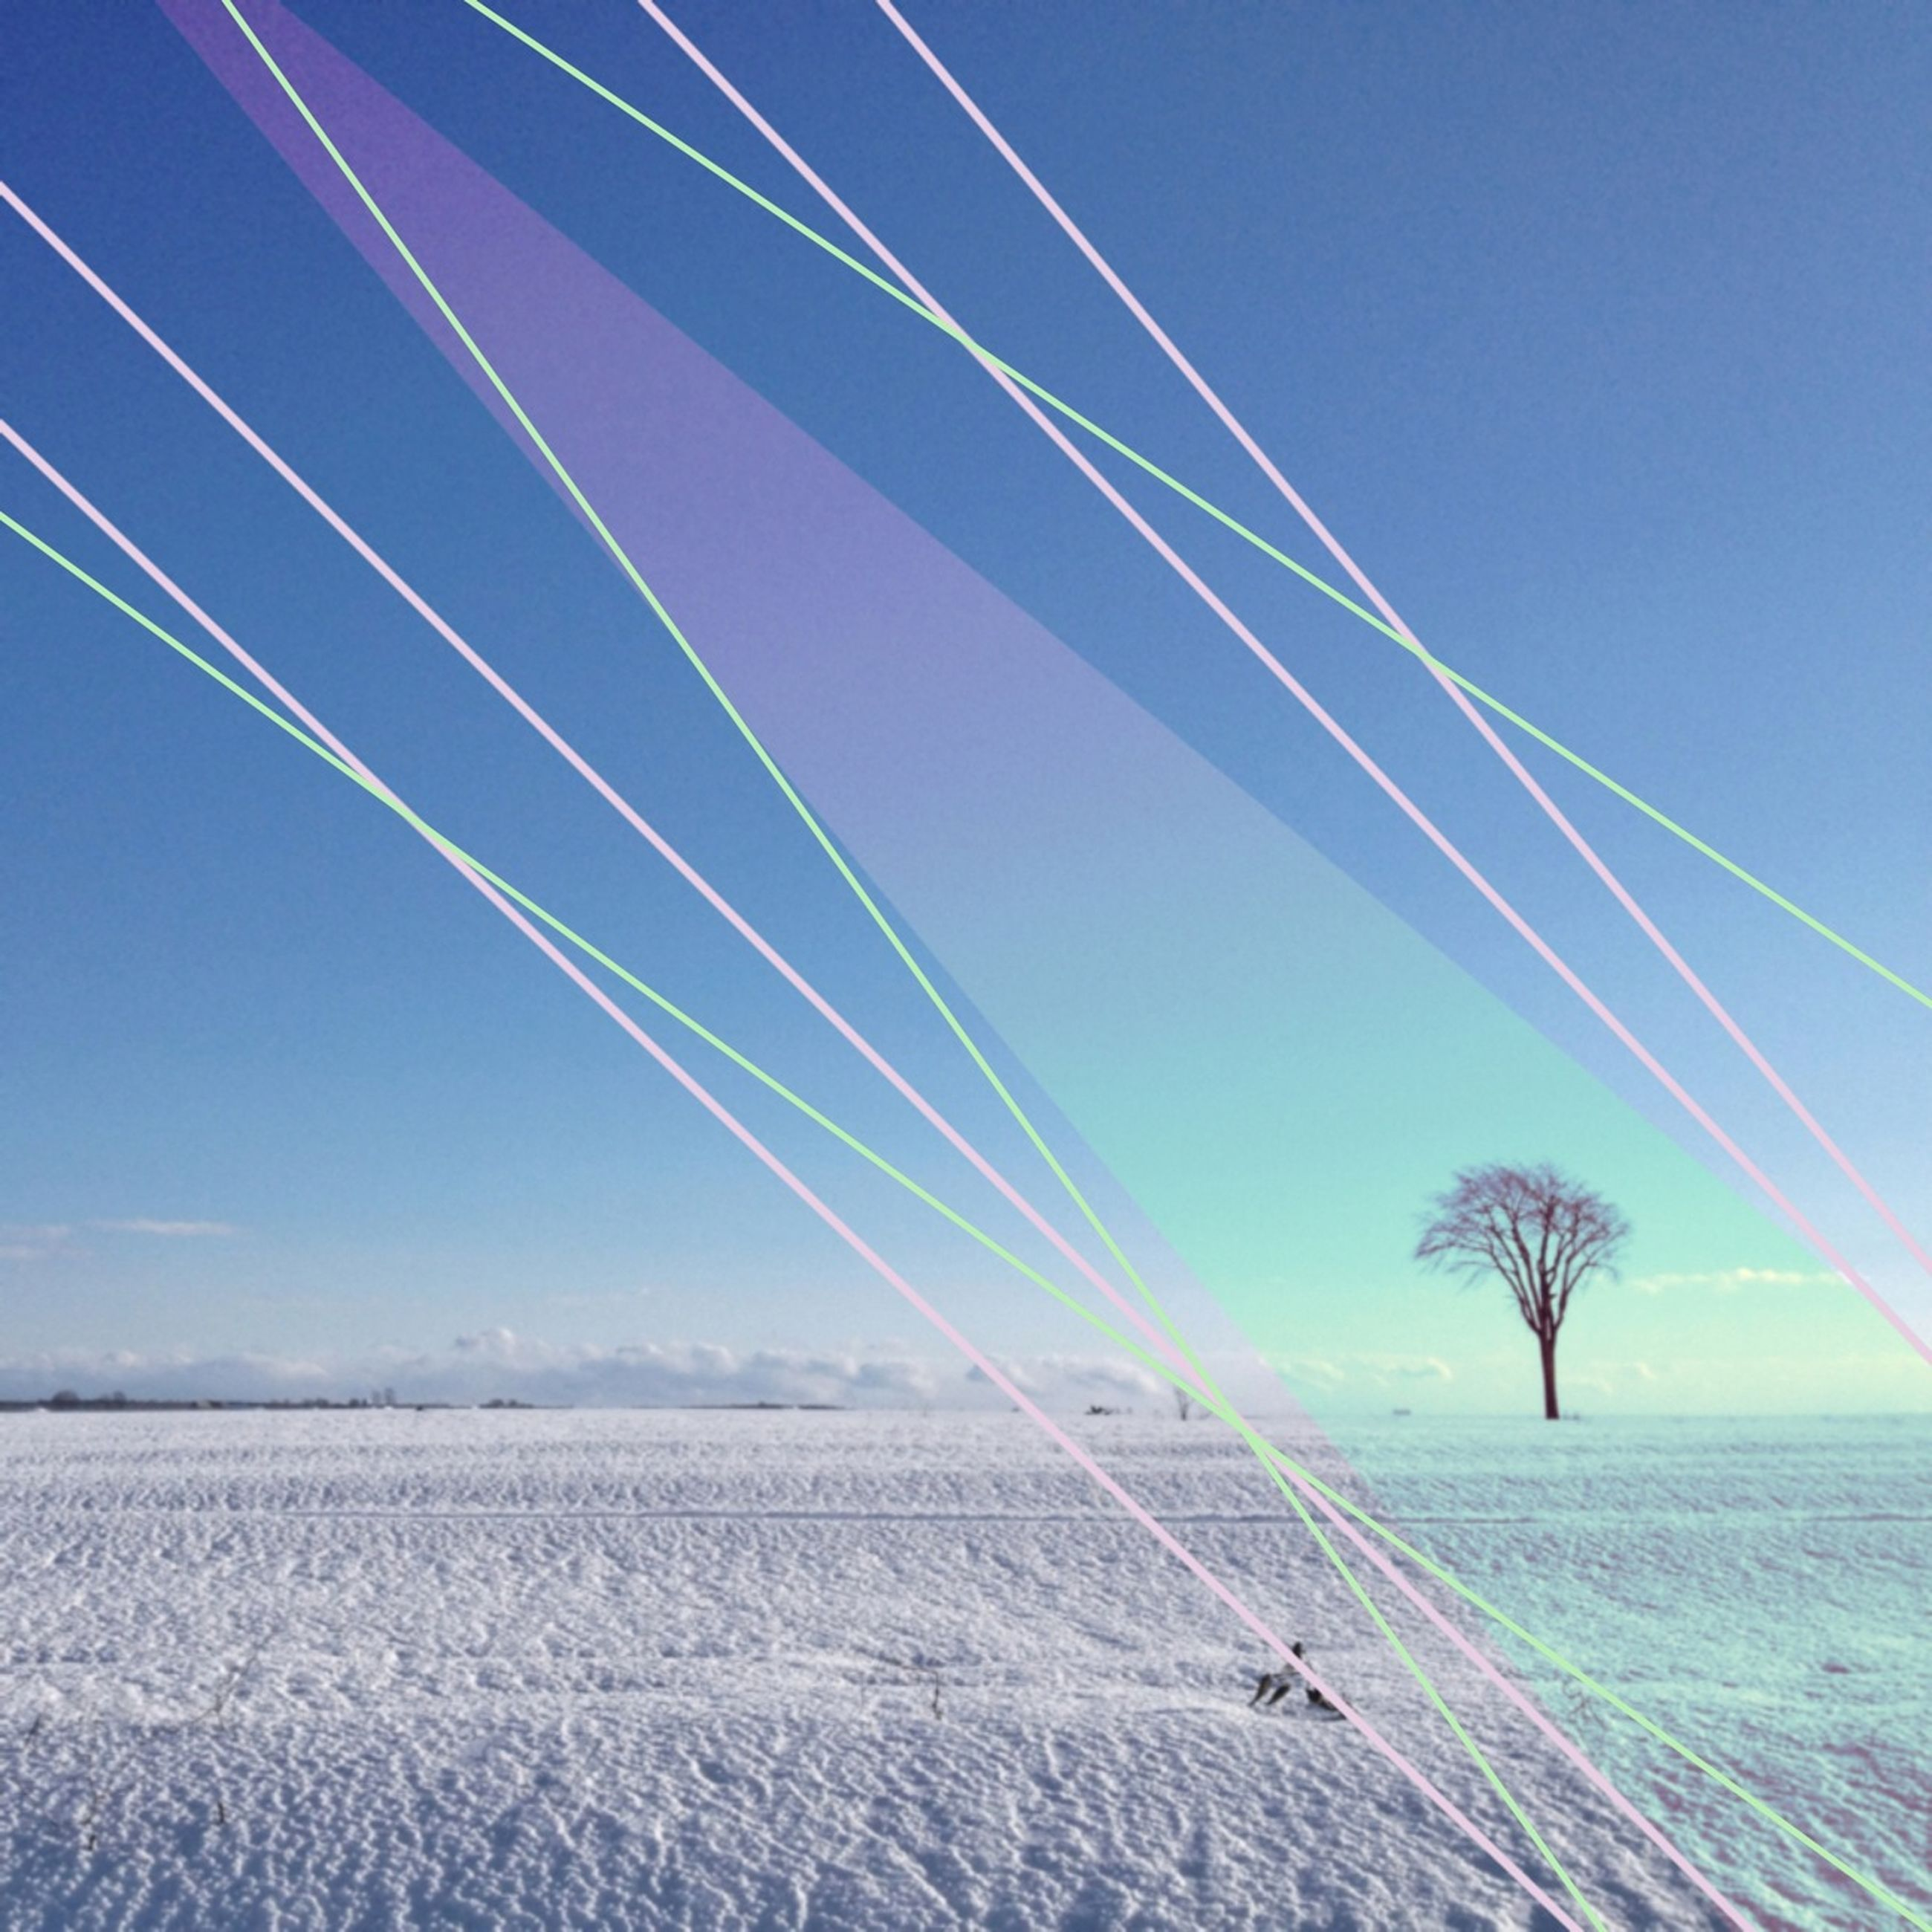 landscape, transportation, clear sky, connection, blue, sky, tranquility, tranquil scene, vapor trail, scenics, cable, field, beauty in nature, nature, power line, outdoors, low angle view, day, no people, road